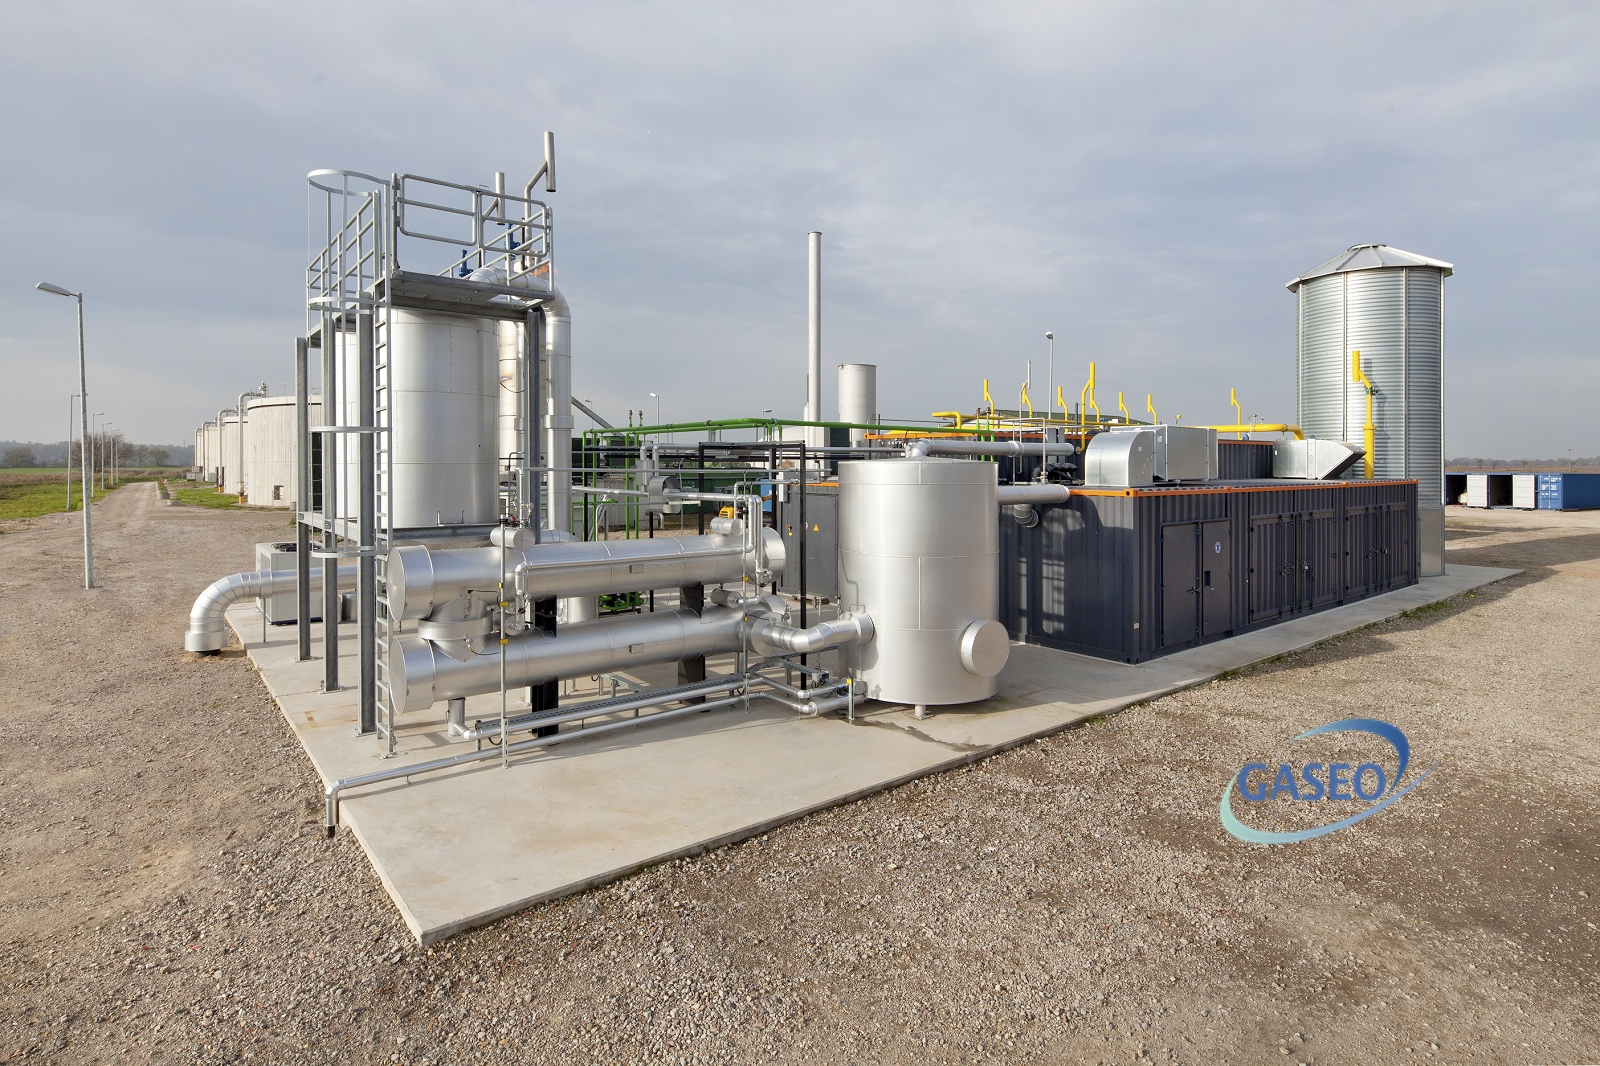 2b-gaseo-biomethane-installation-216